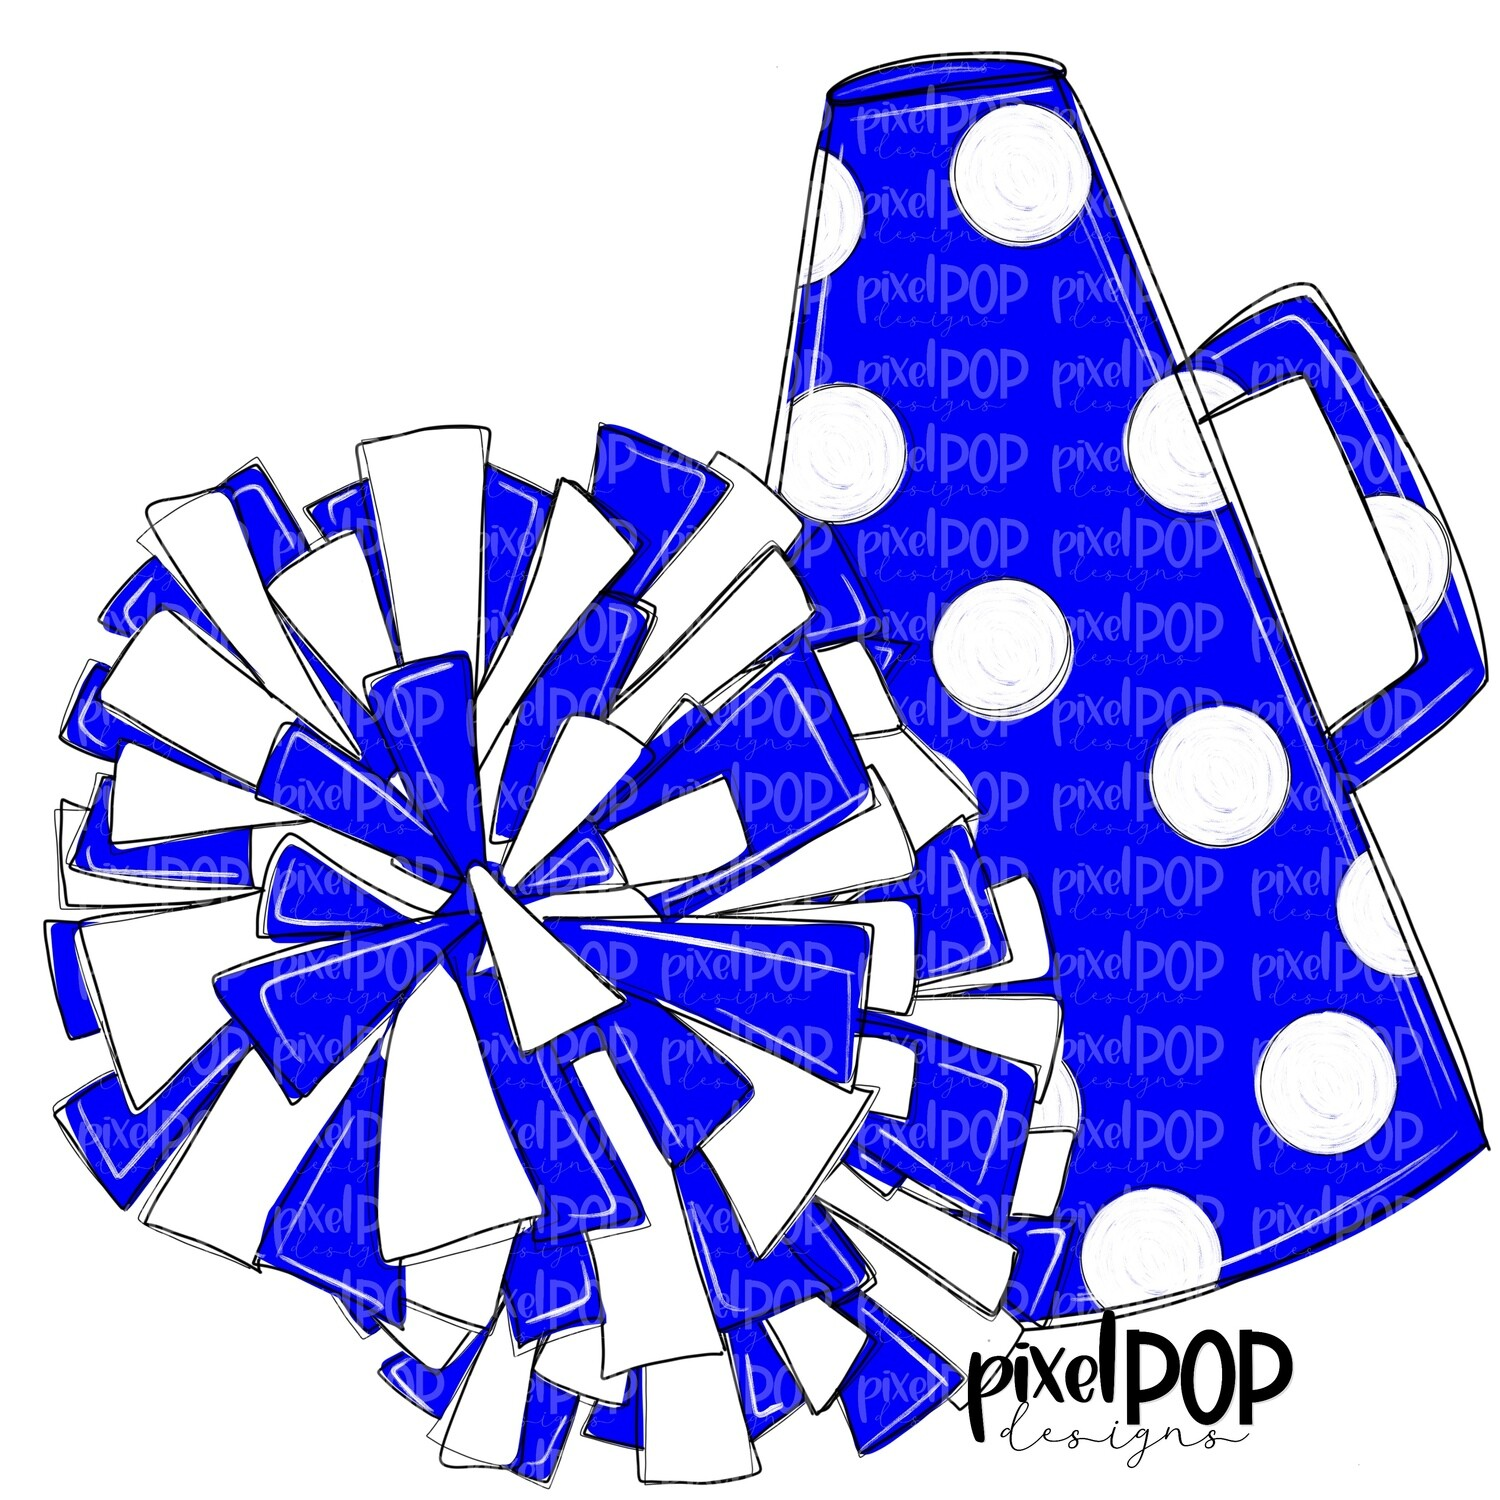 Cheerleading Megaphone and Poms Blue and White PNG | Cheerleading | Cheer Design | Cheer Art | Cheer Blank | Sports Art